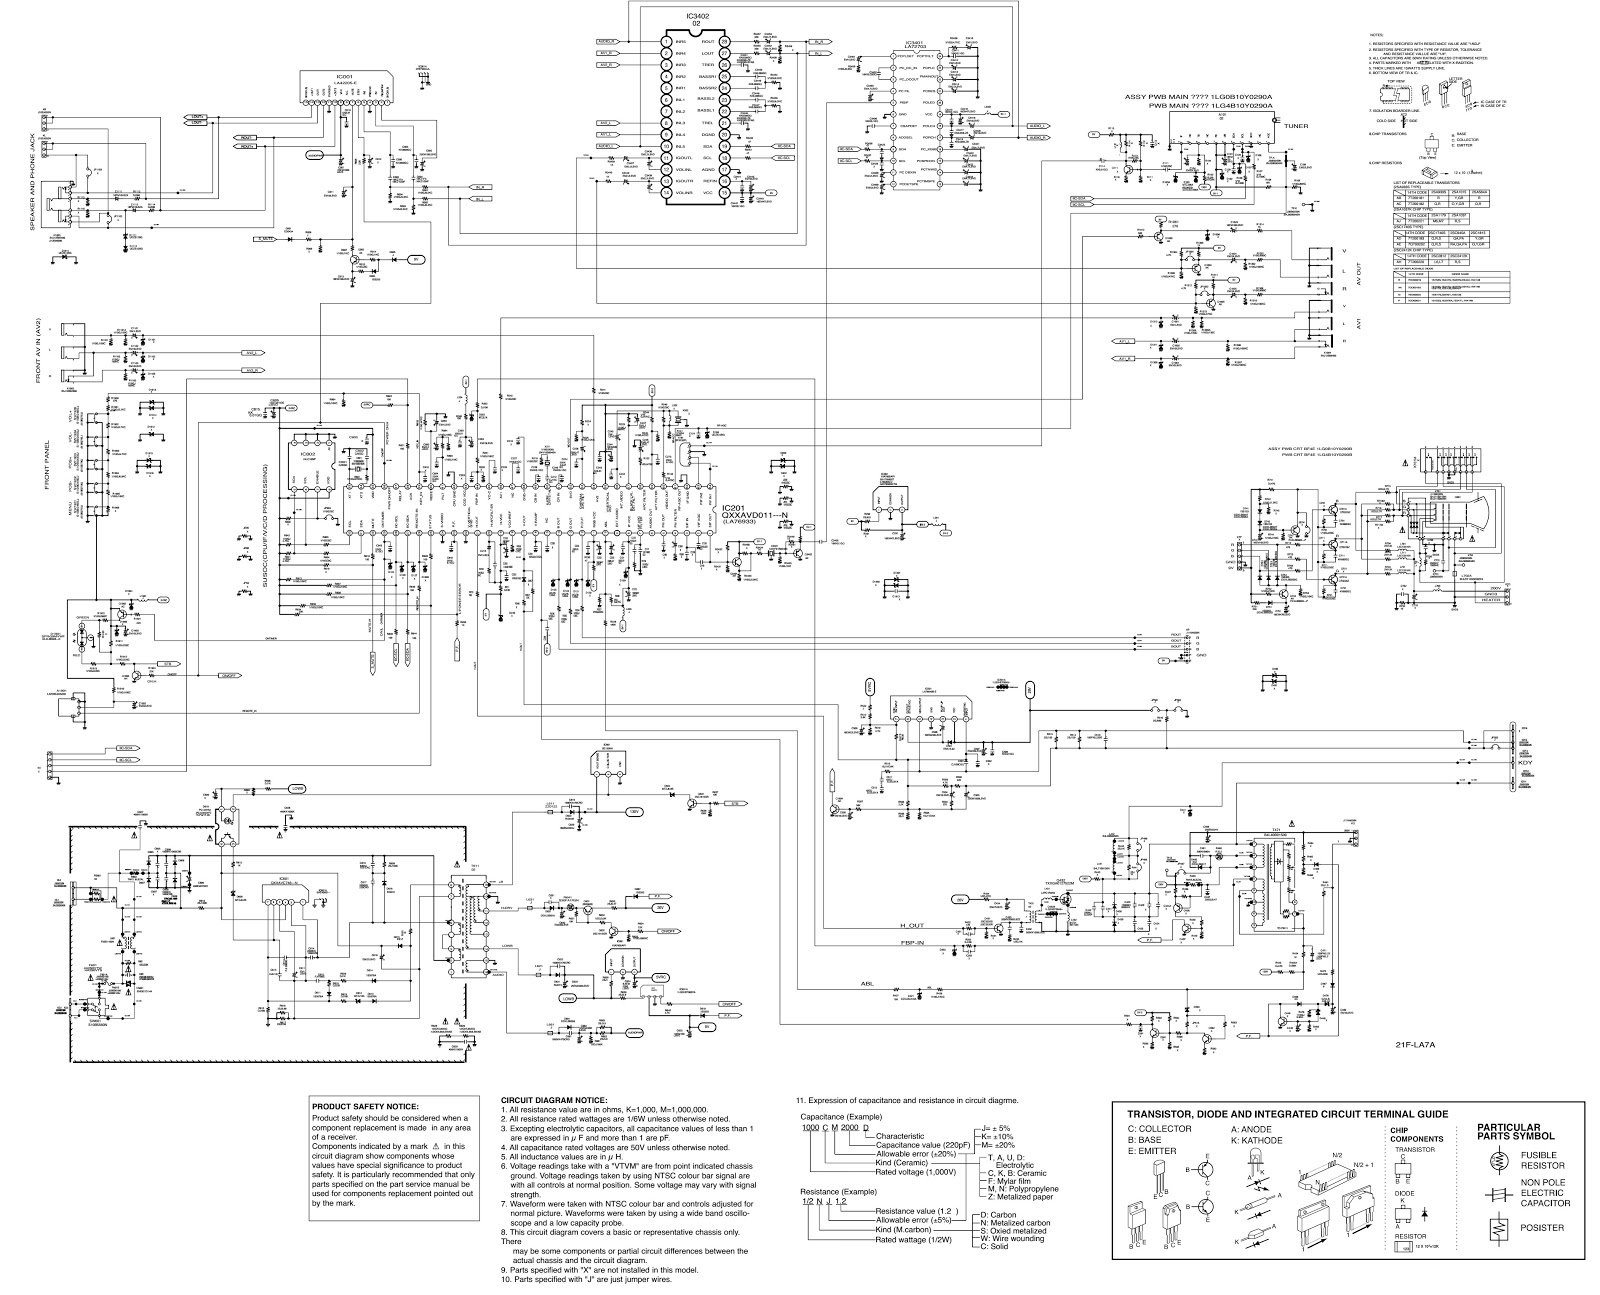 Philco Pf2118 Argentina Used Sanyo Tv Kit How To Enter Service Dj5 Wiring Diagram Circuit Schematic And Pwb